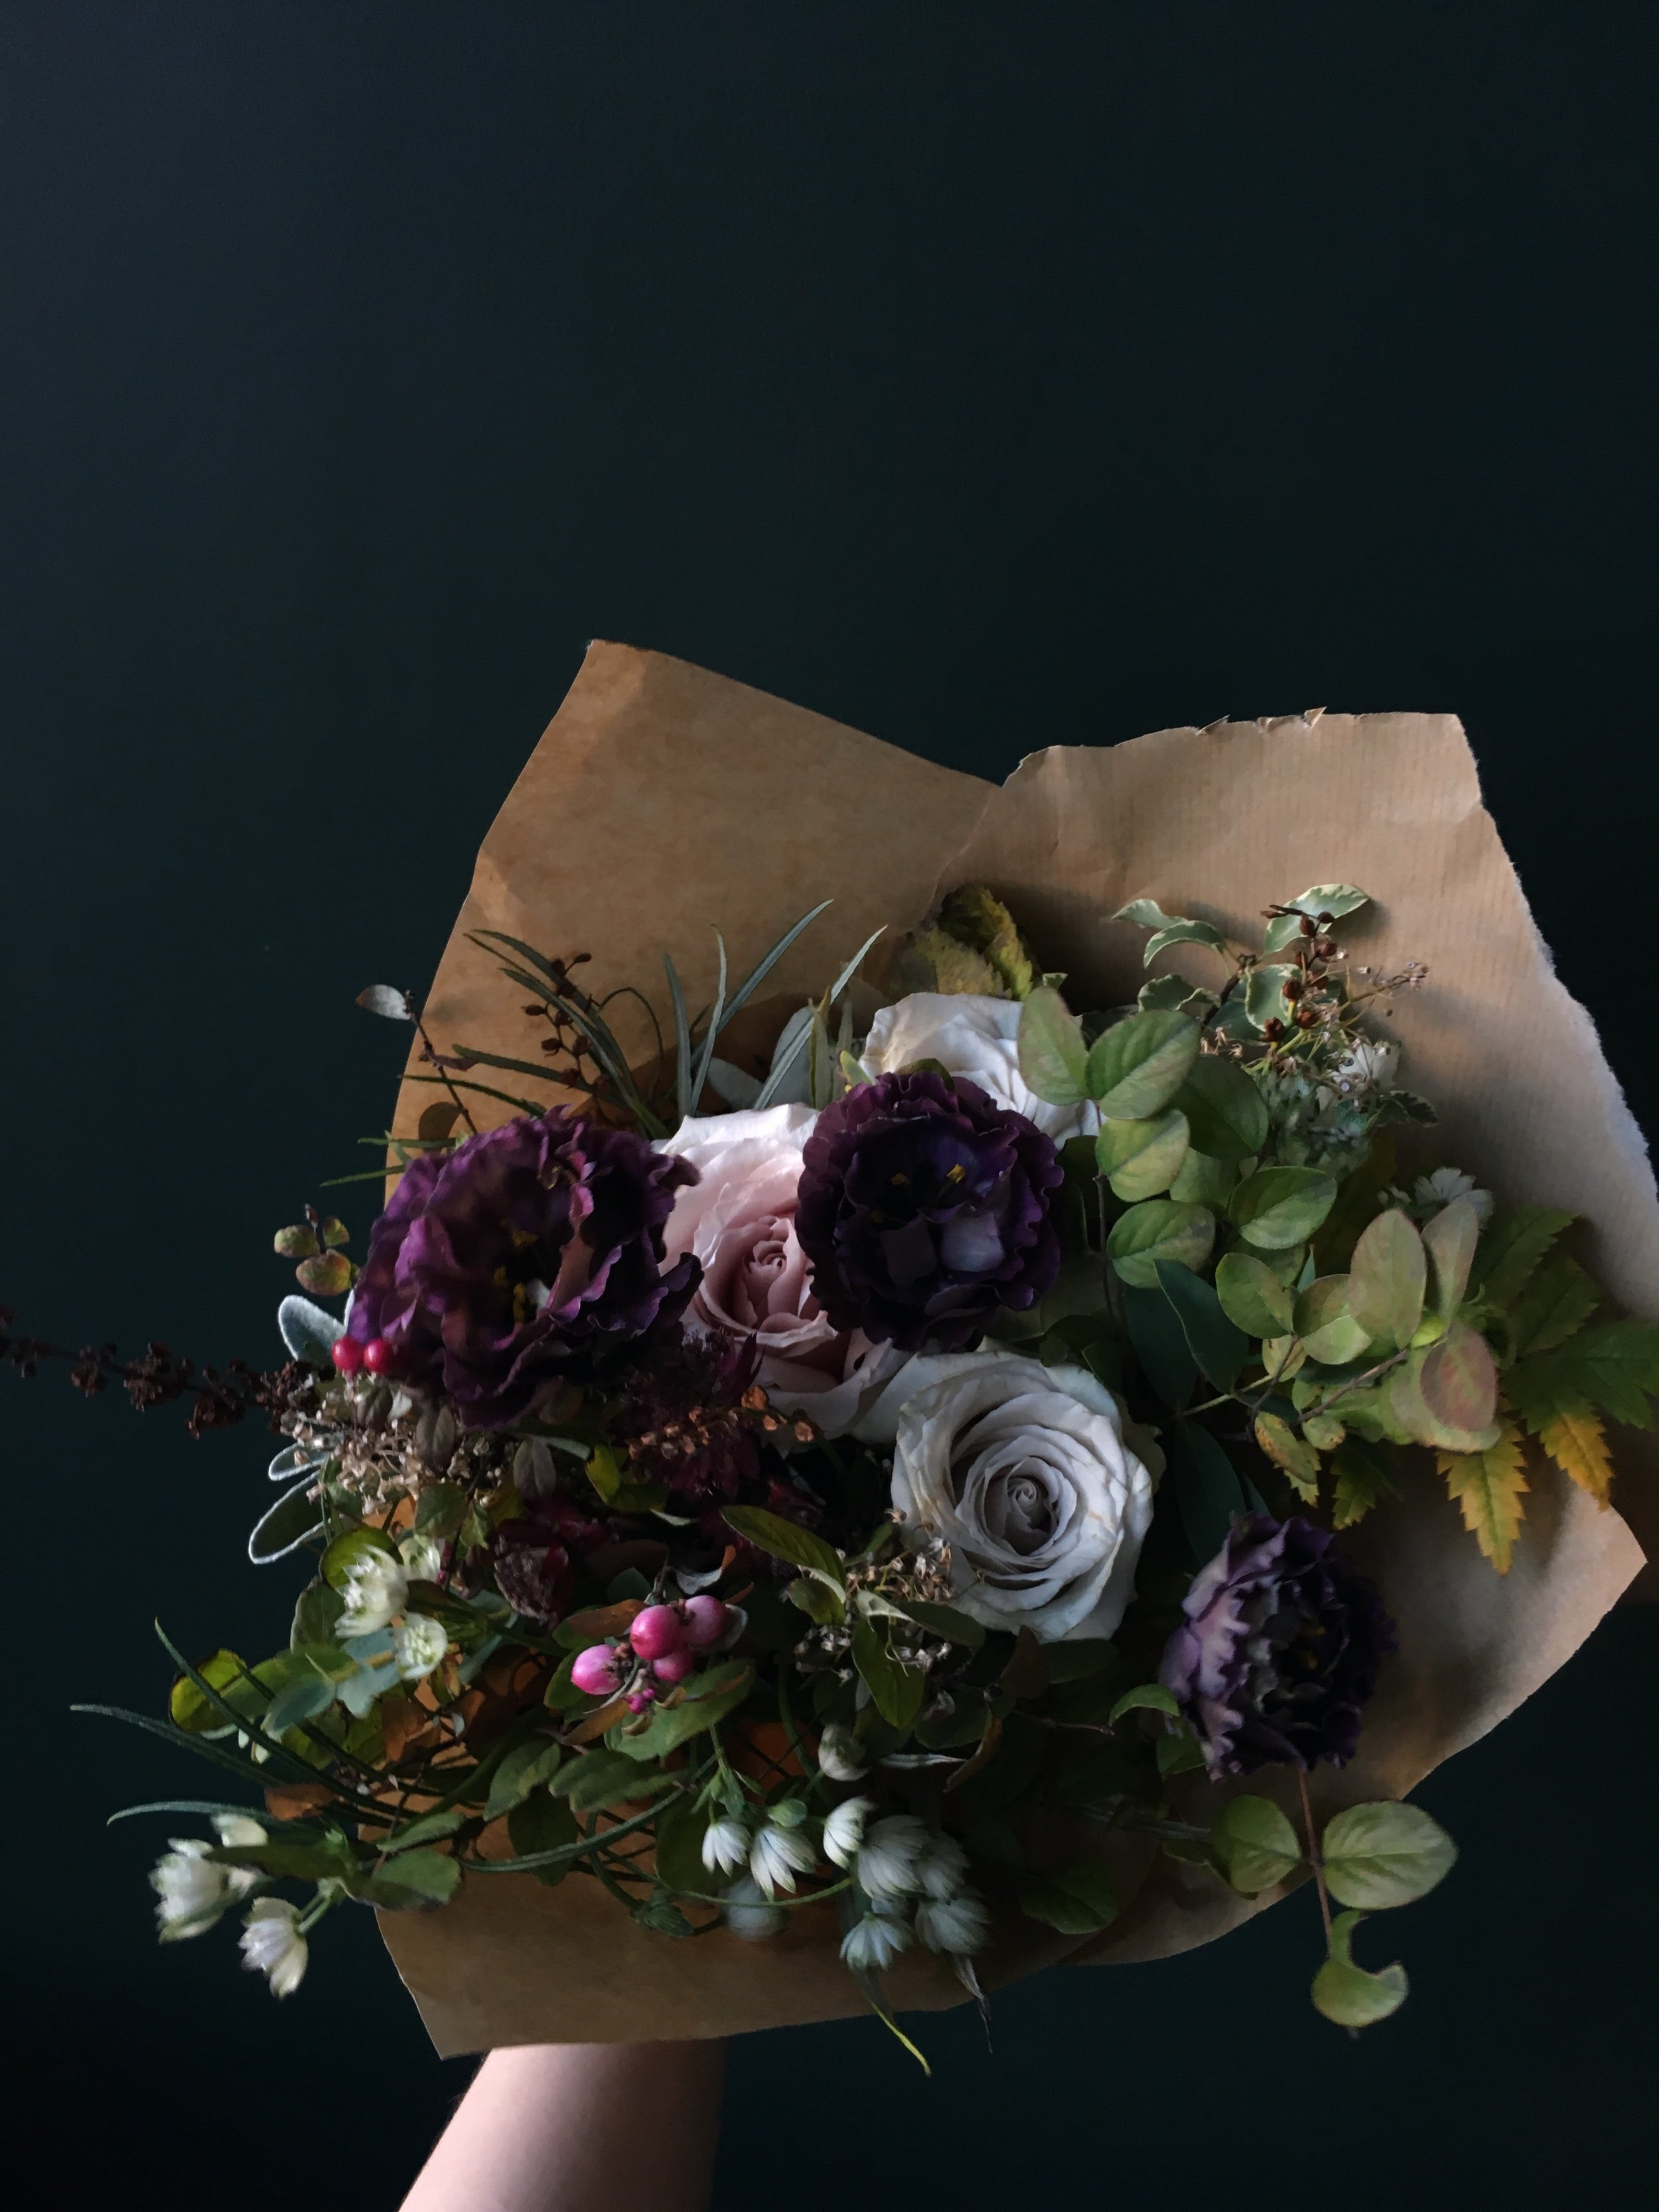 bespoke bouquets - Made to order from £25.00Pre order online